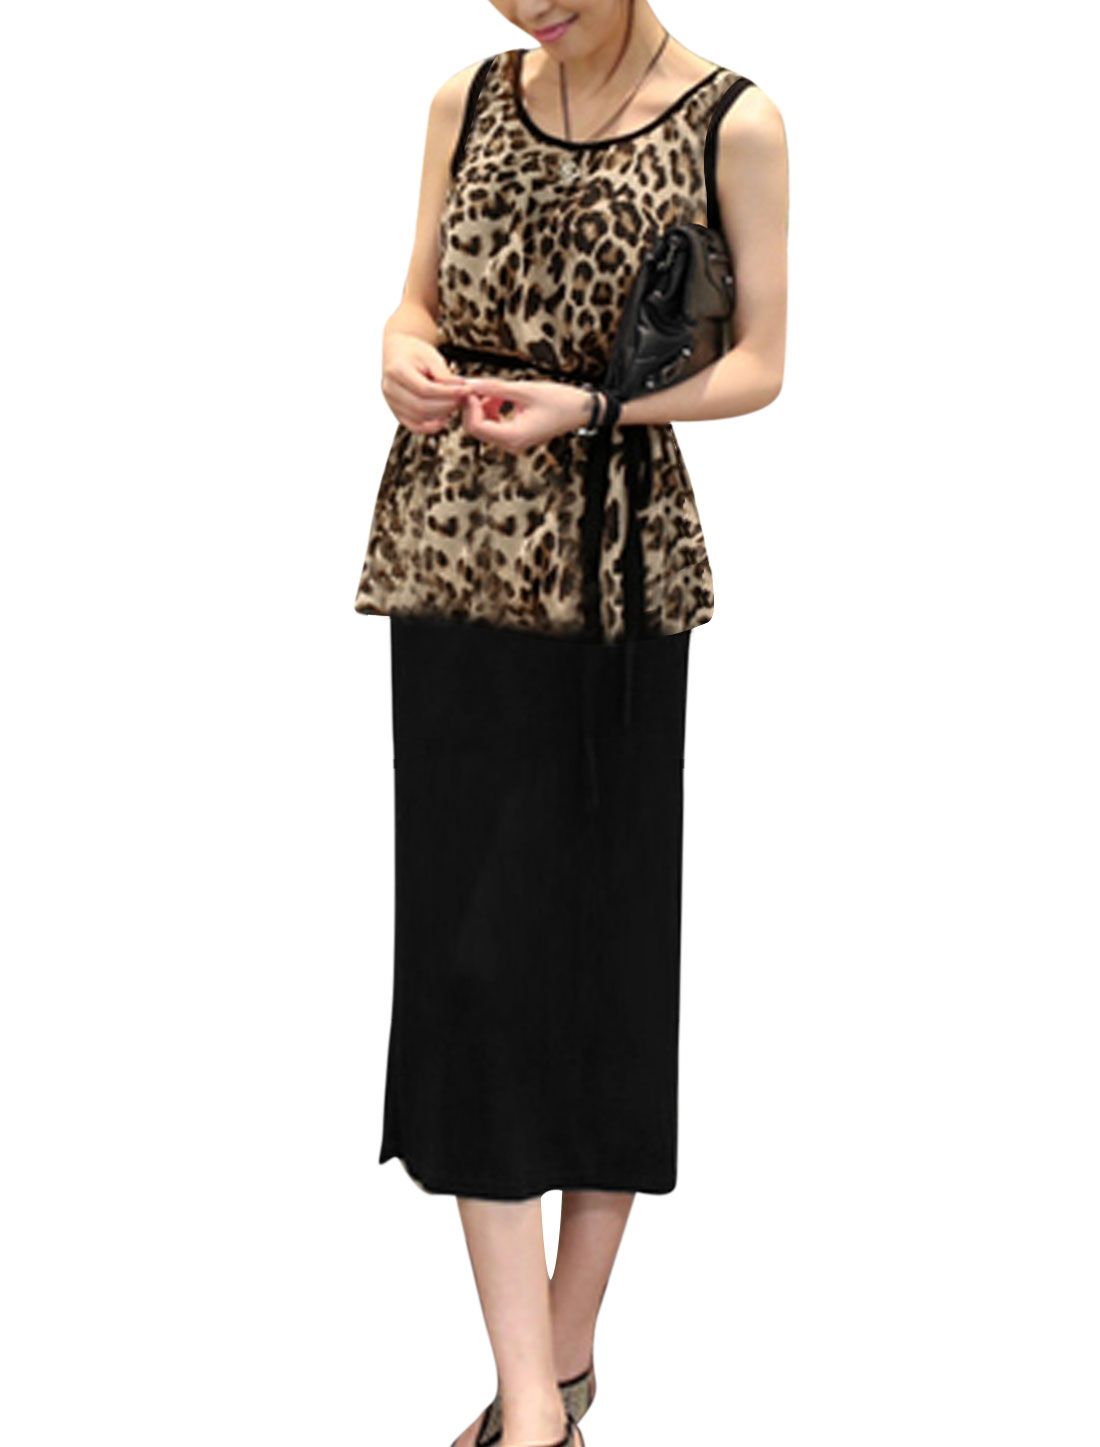 Lady Layered Design Leopard Prints Dress w Waist String Black Brown S